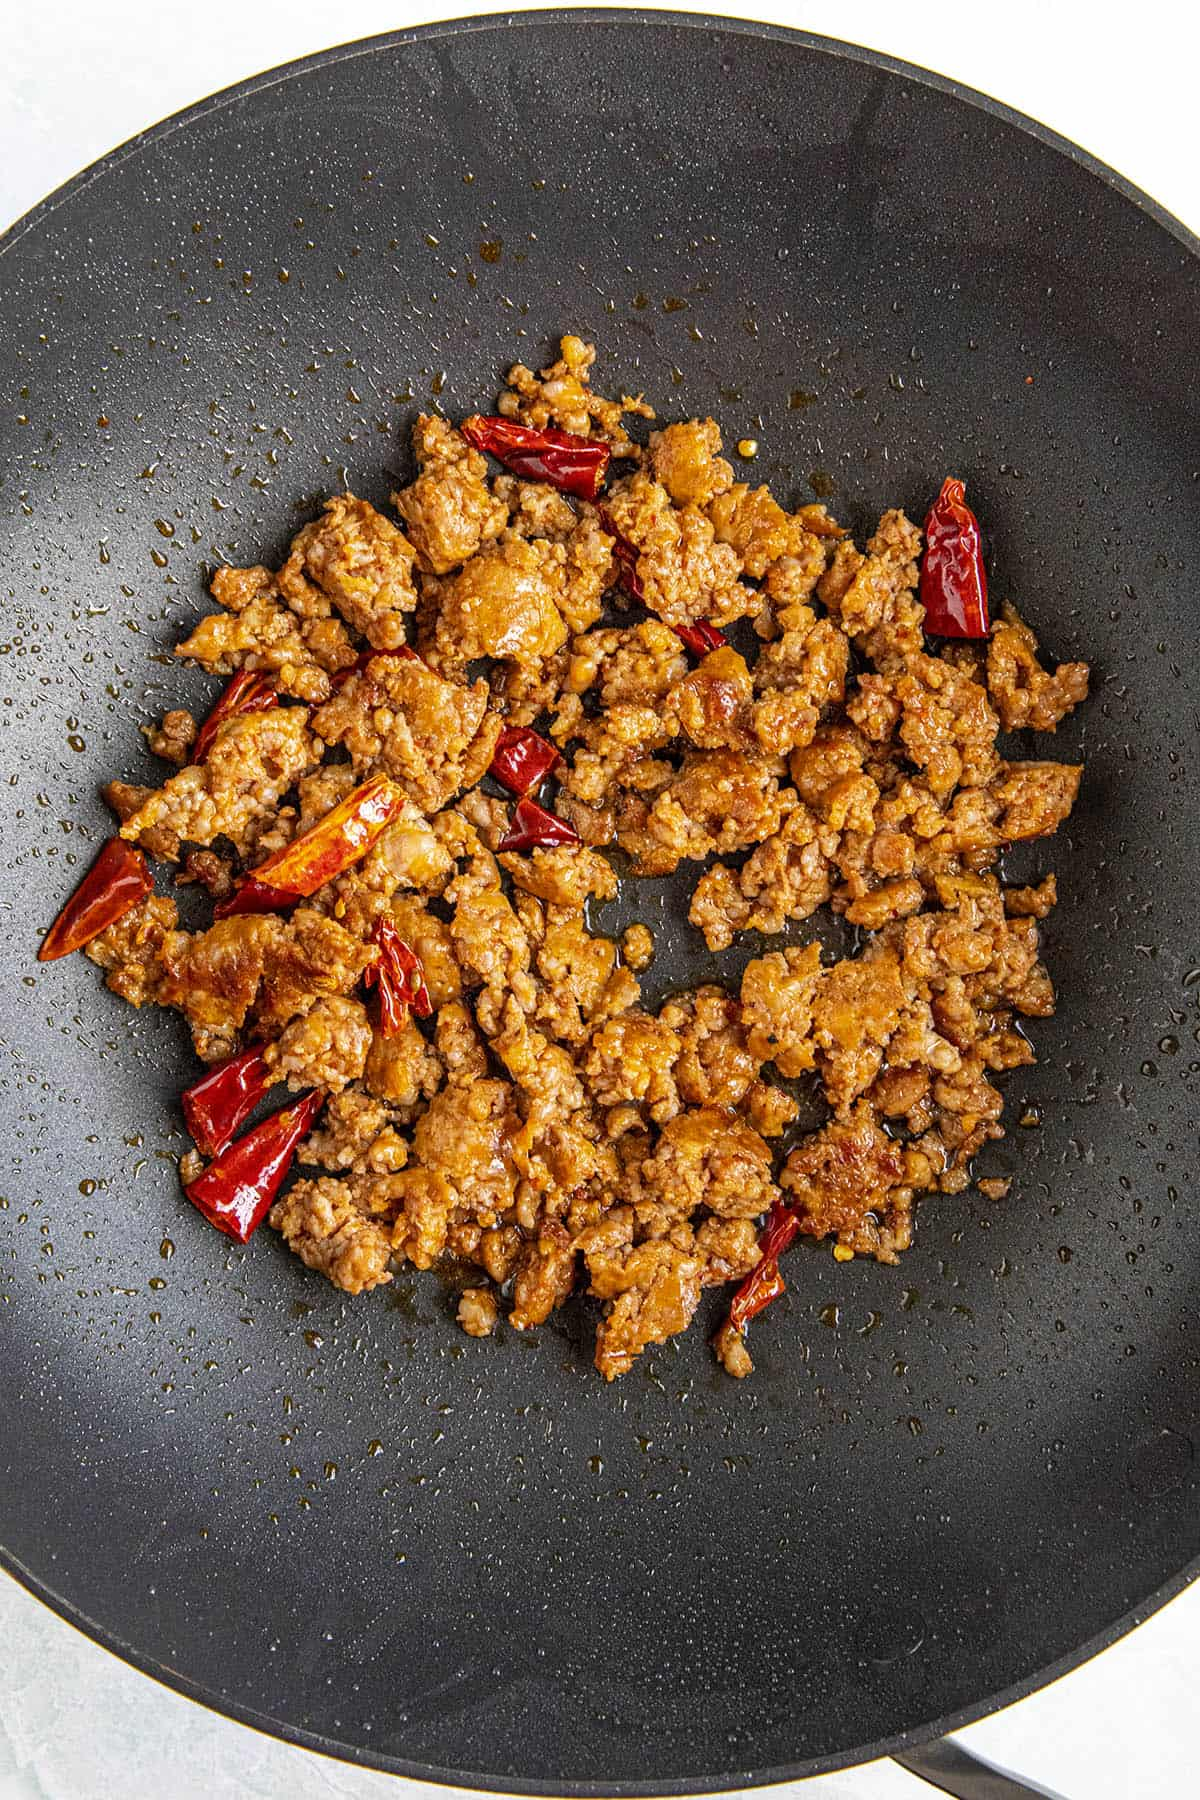 Cooking the pork and peppers in a hot pan